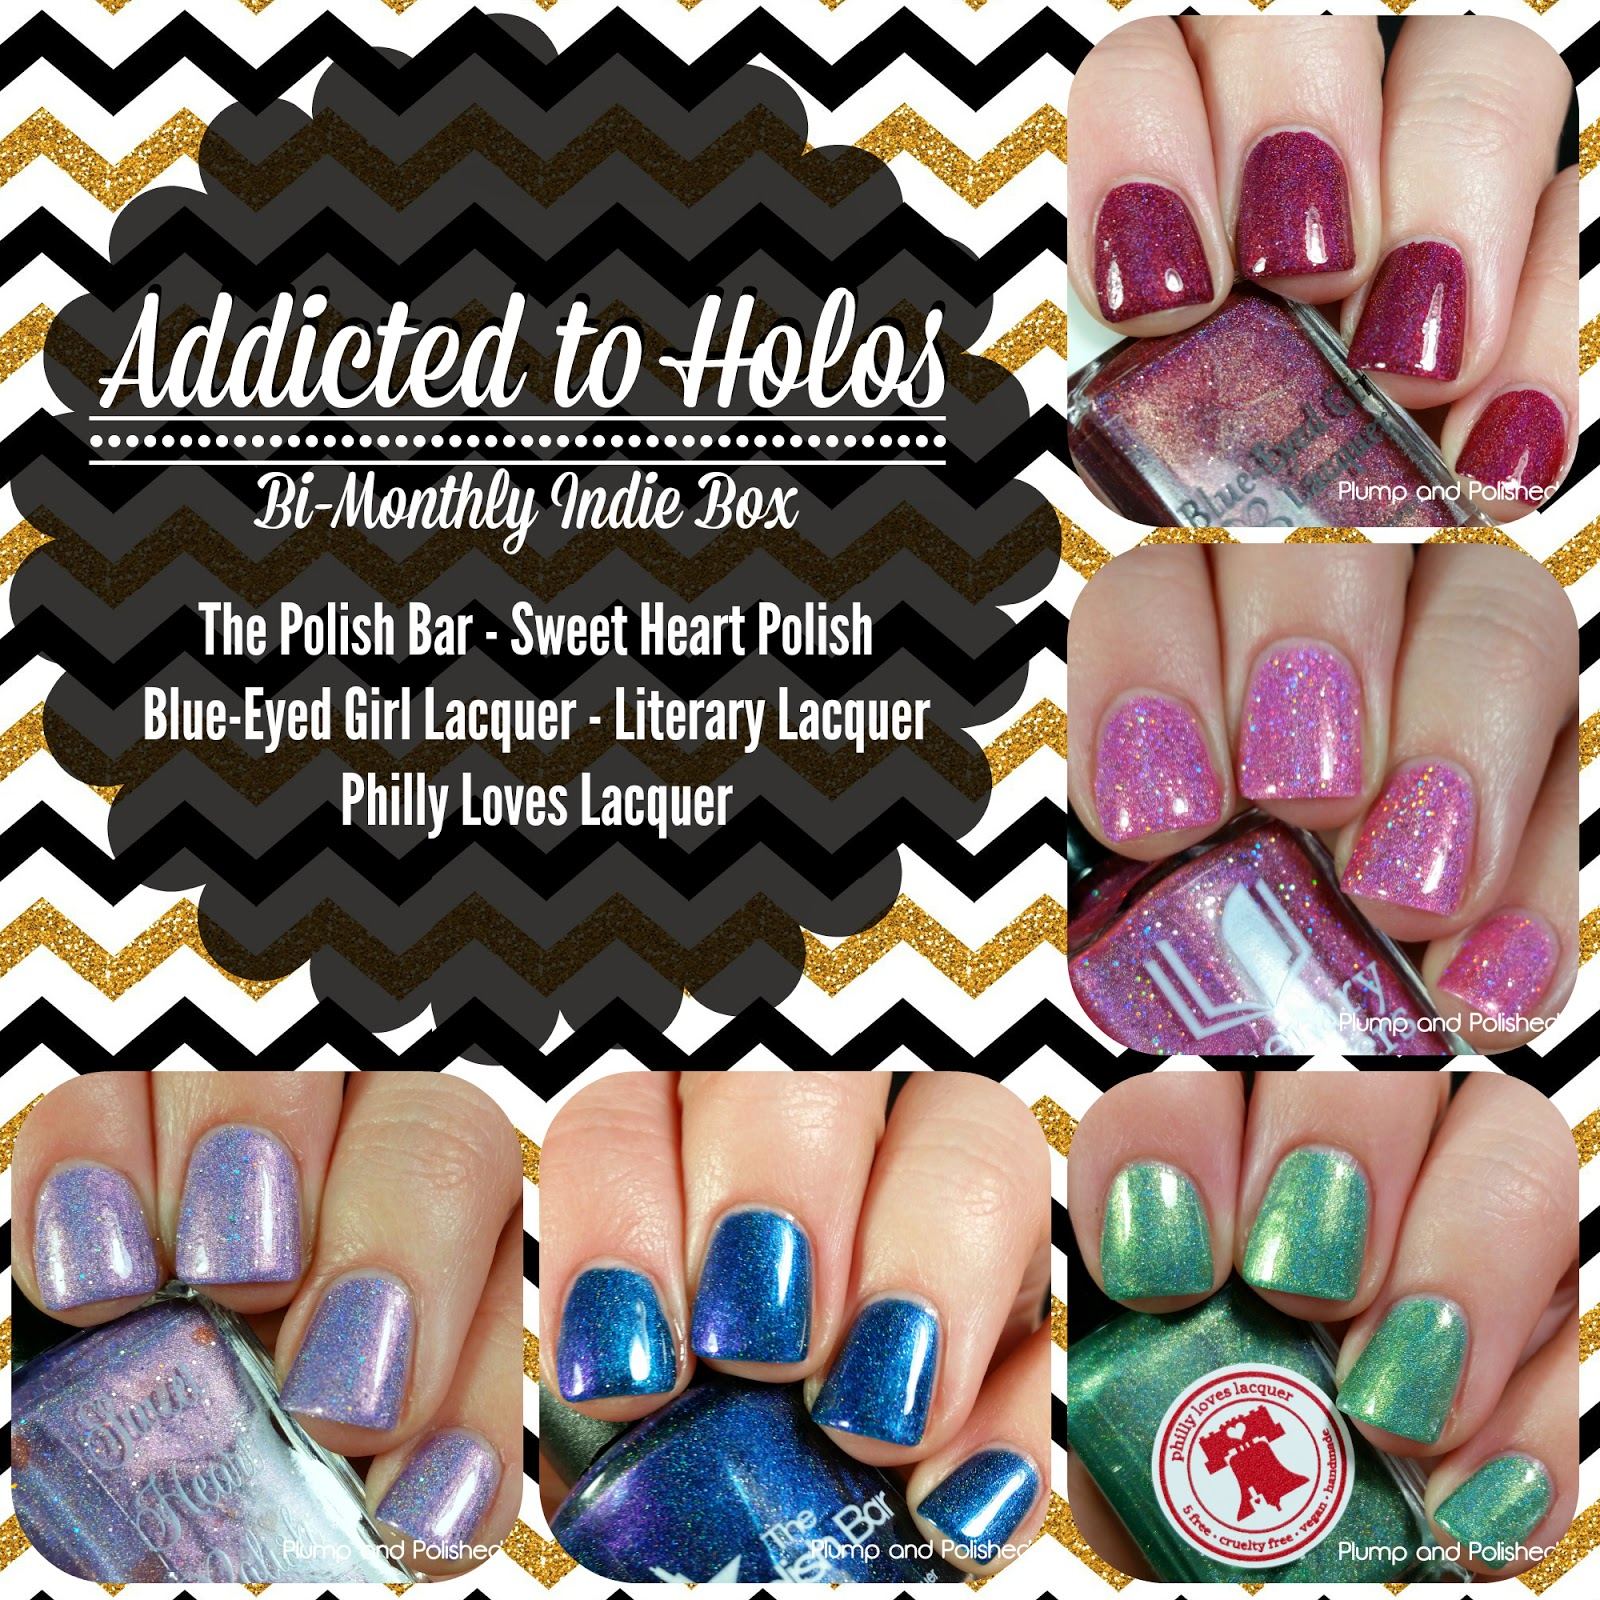 Addicted to Holos - Indie Box February 2014